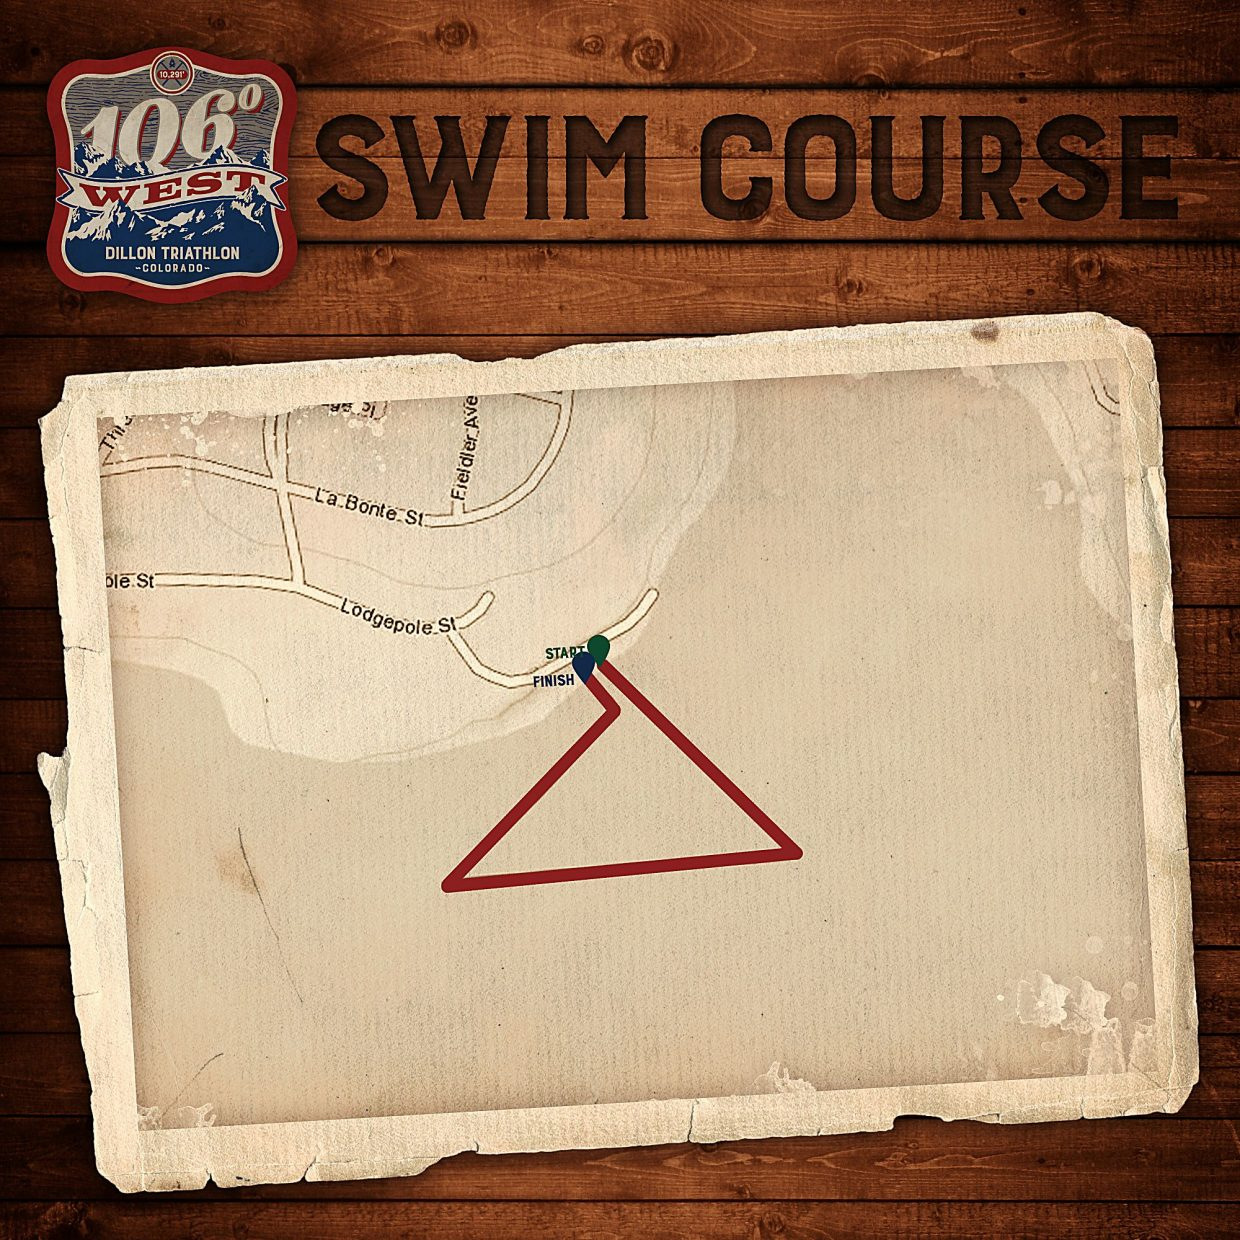 The 1.3-mile swim route for the debut 106 West Triathlon in Dillon on Sept. 10. Spectators can post up at the Tiki Bar or anywhere at the Dillon Marina and nearby park to catch the action, beginning at 9 a.m.